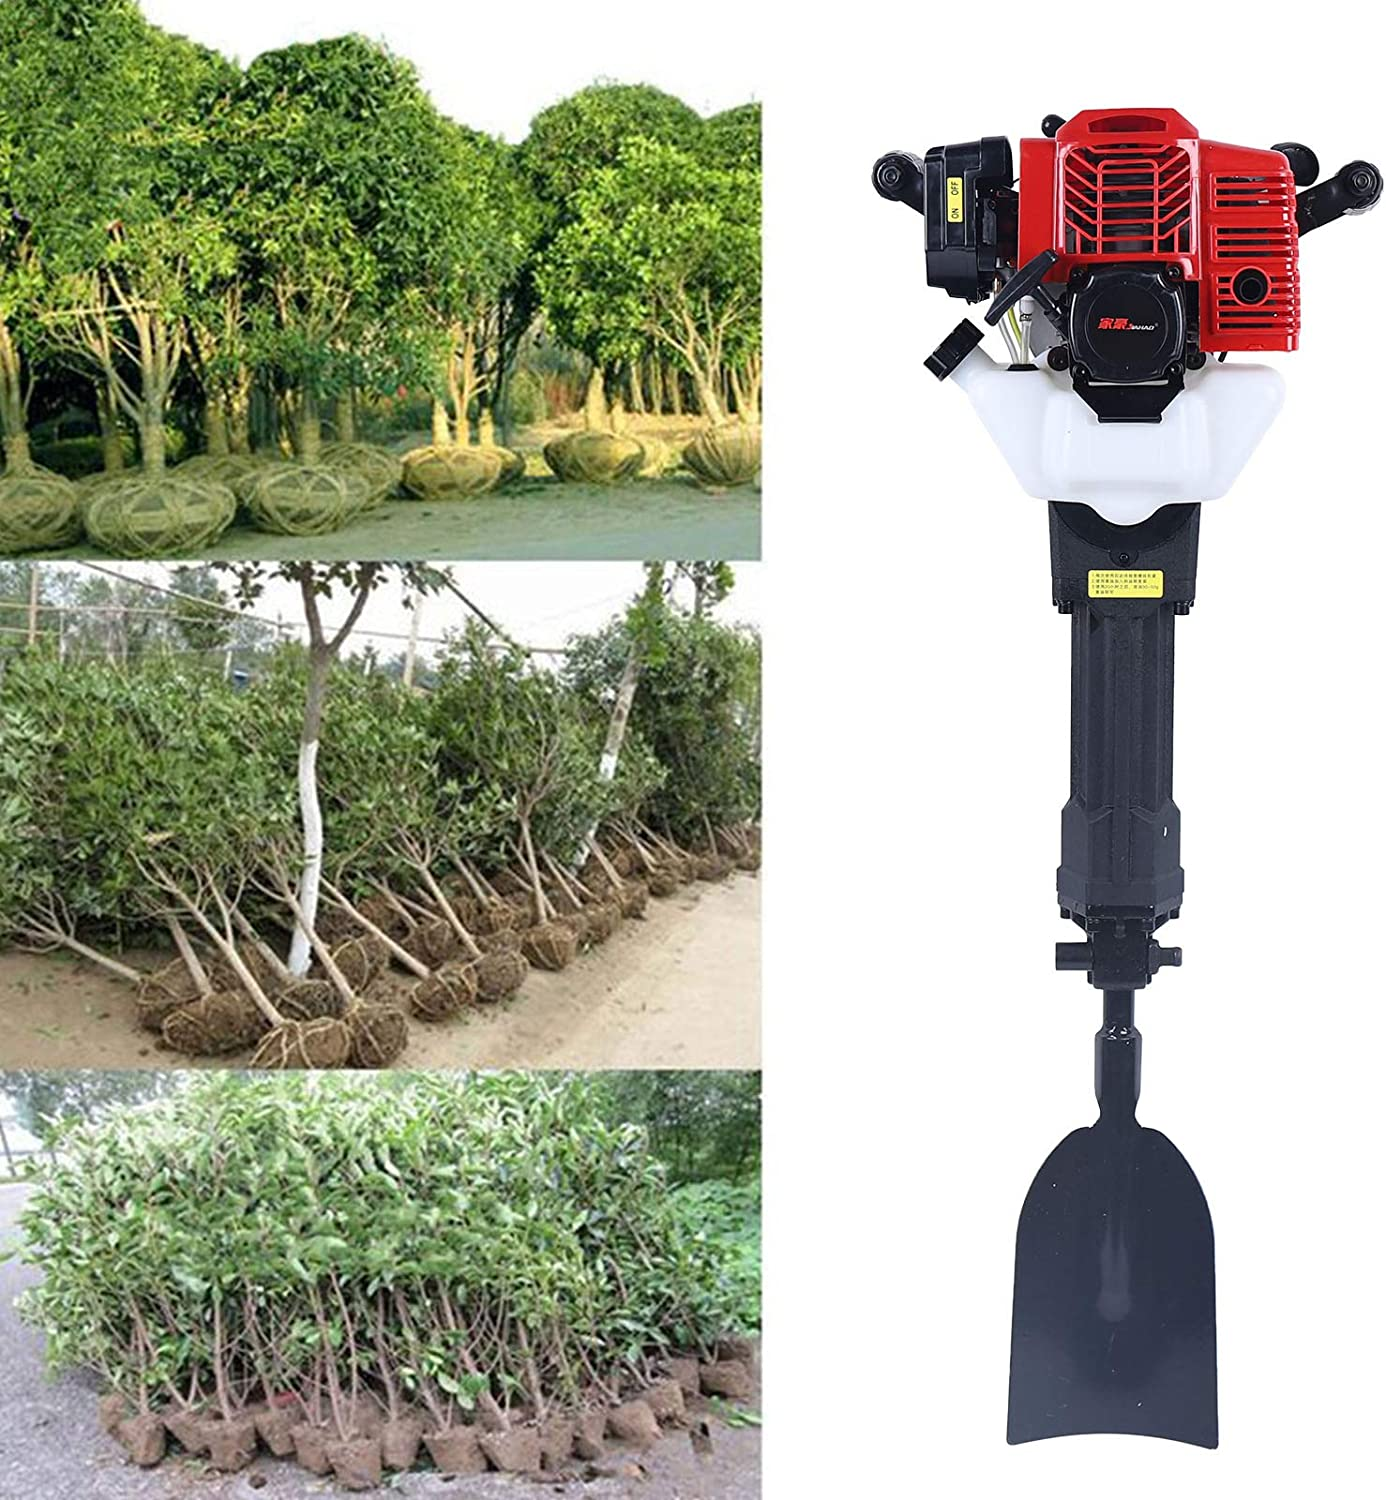 YIYIBYUS 52CC Inventory cleanup selling sale Portable Excavator Garden Digger Tree Air-Cooled Max 48% OFF